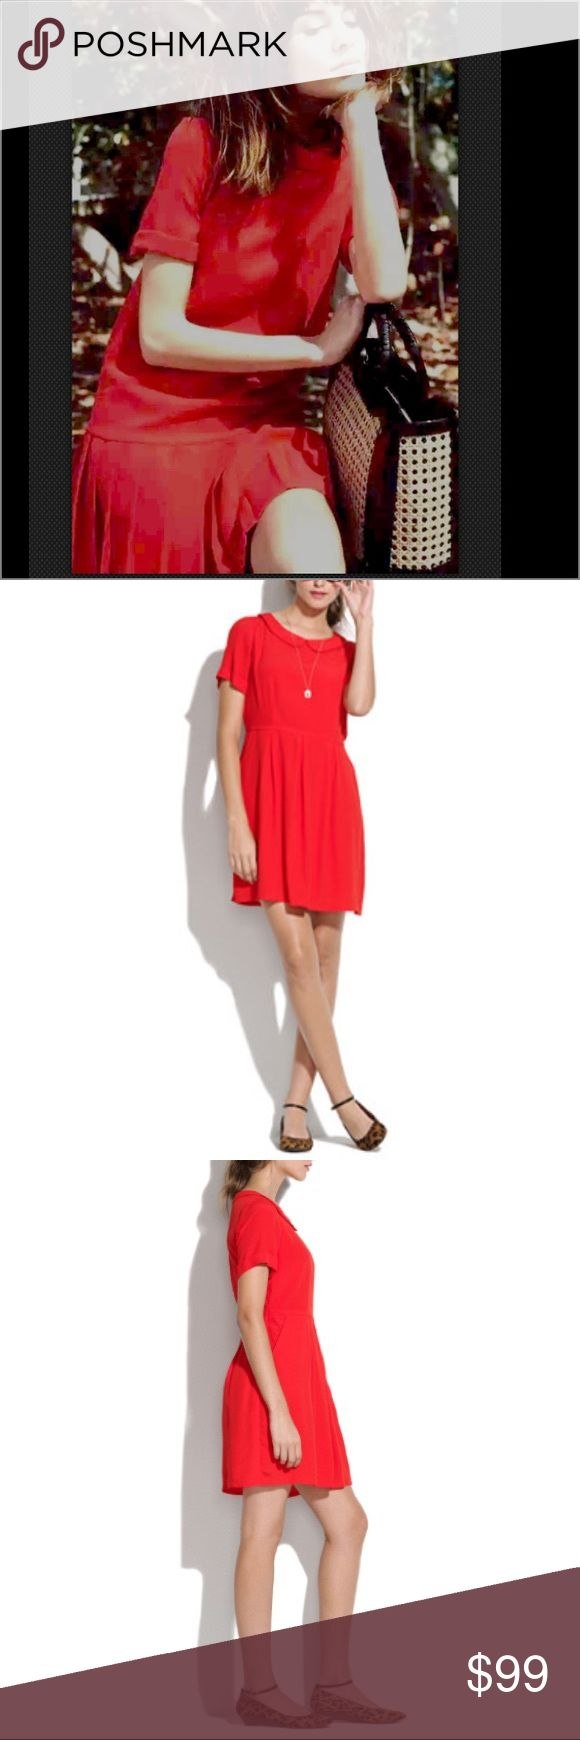 NEW Alexa Chung madewell red pan collar silk dress Incredibly RARE  Madewell Sodashop Dress  Sold out for $148